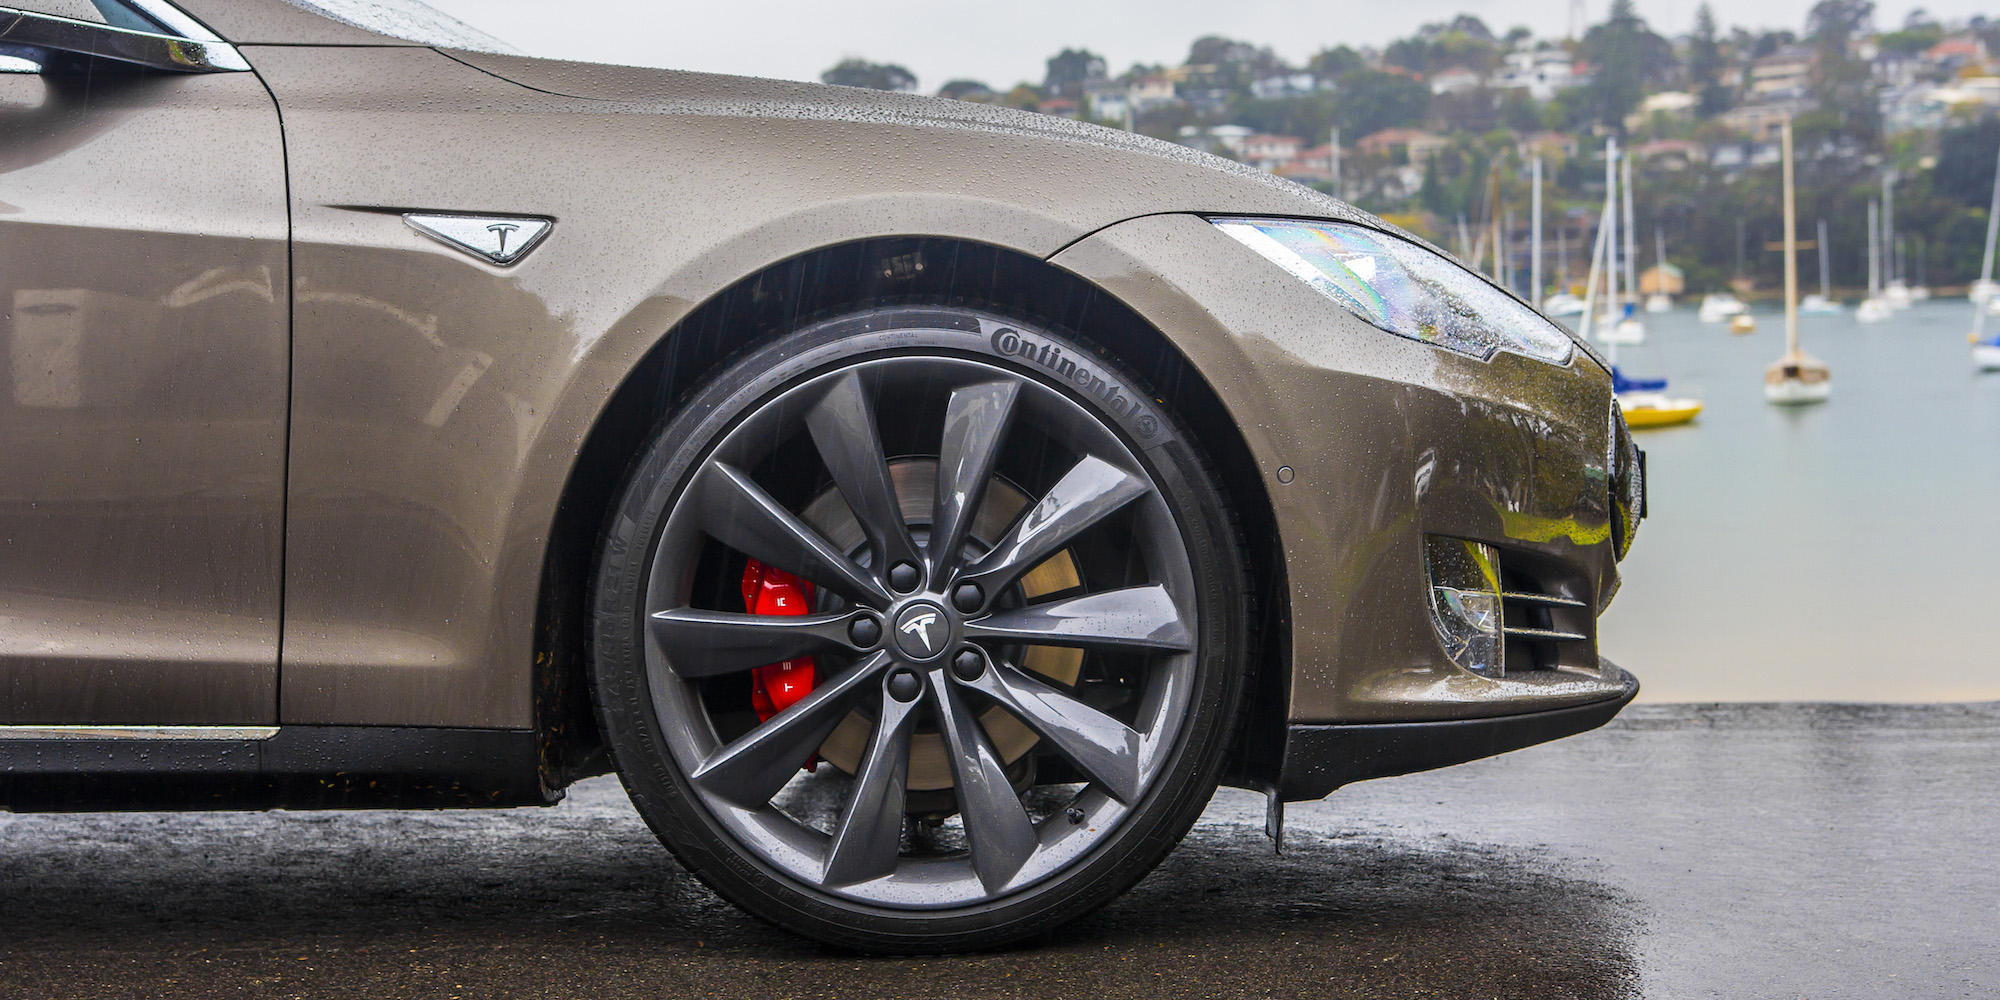 2015 Tesla Model S P85d Front Wheel (View 28 of 37)